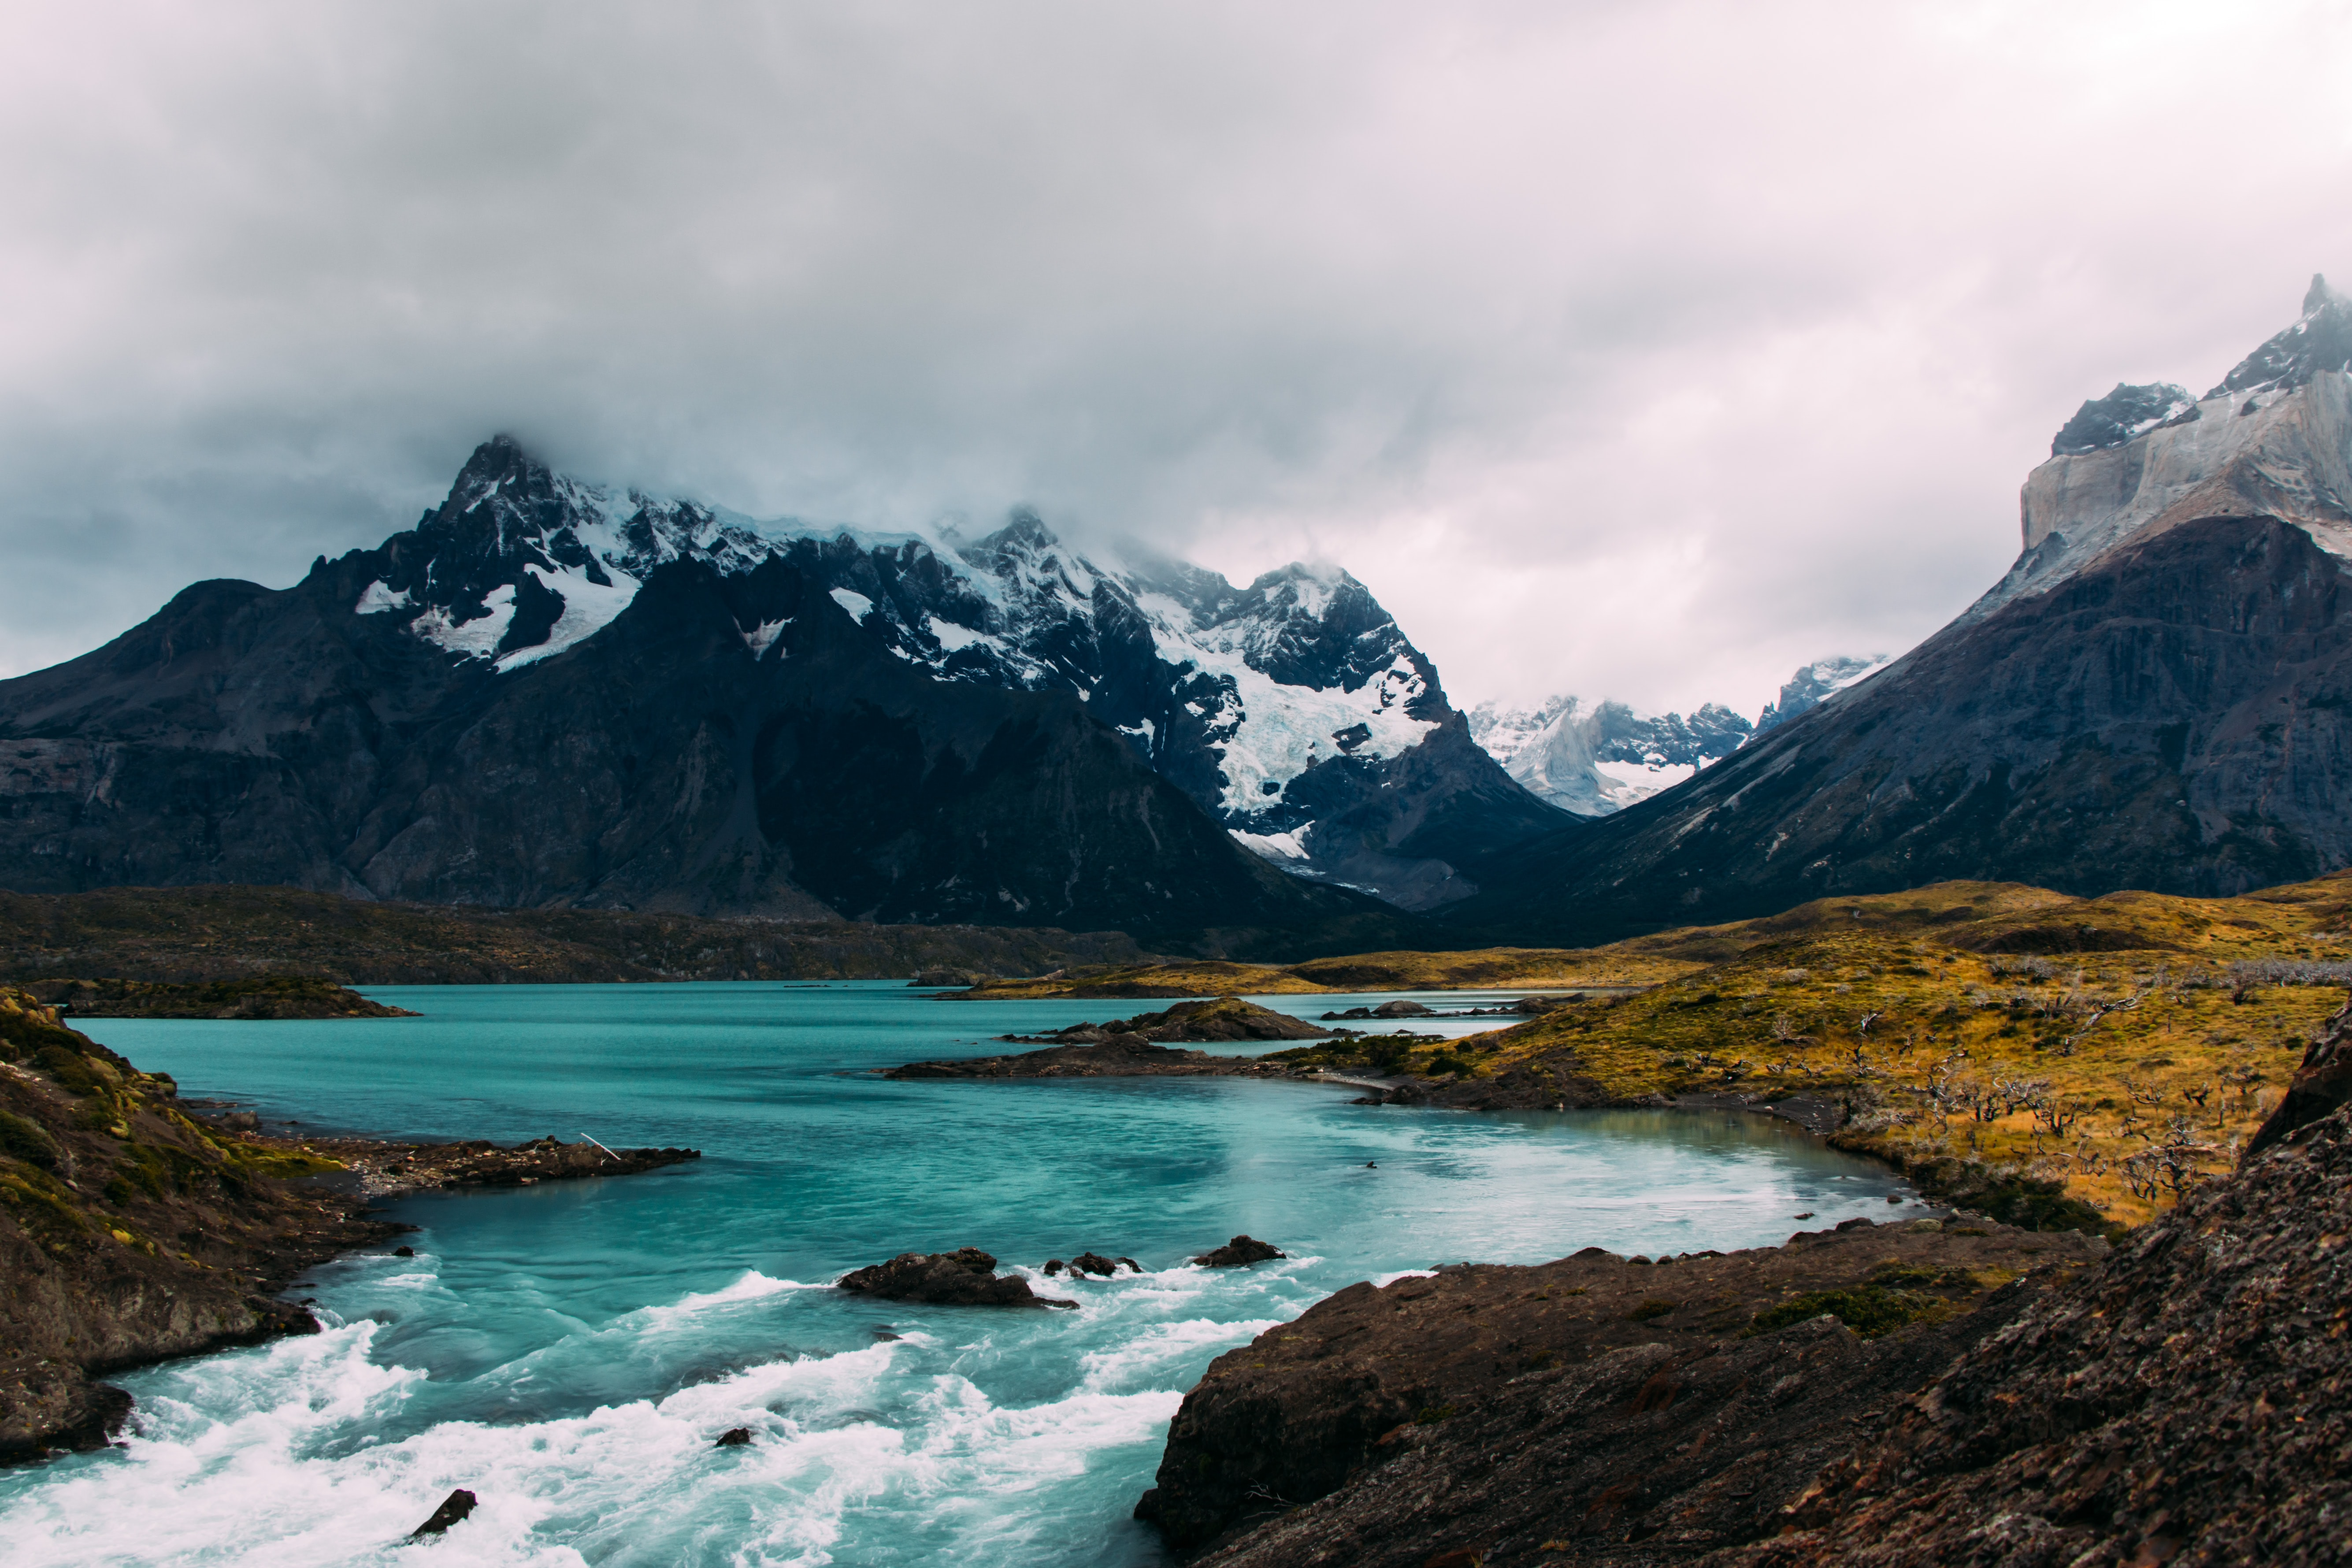 body of water surrounded by mountains